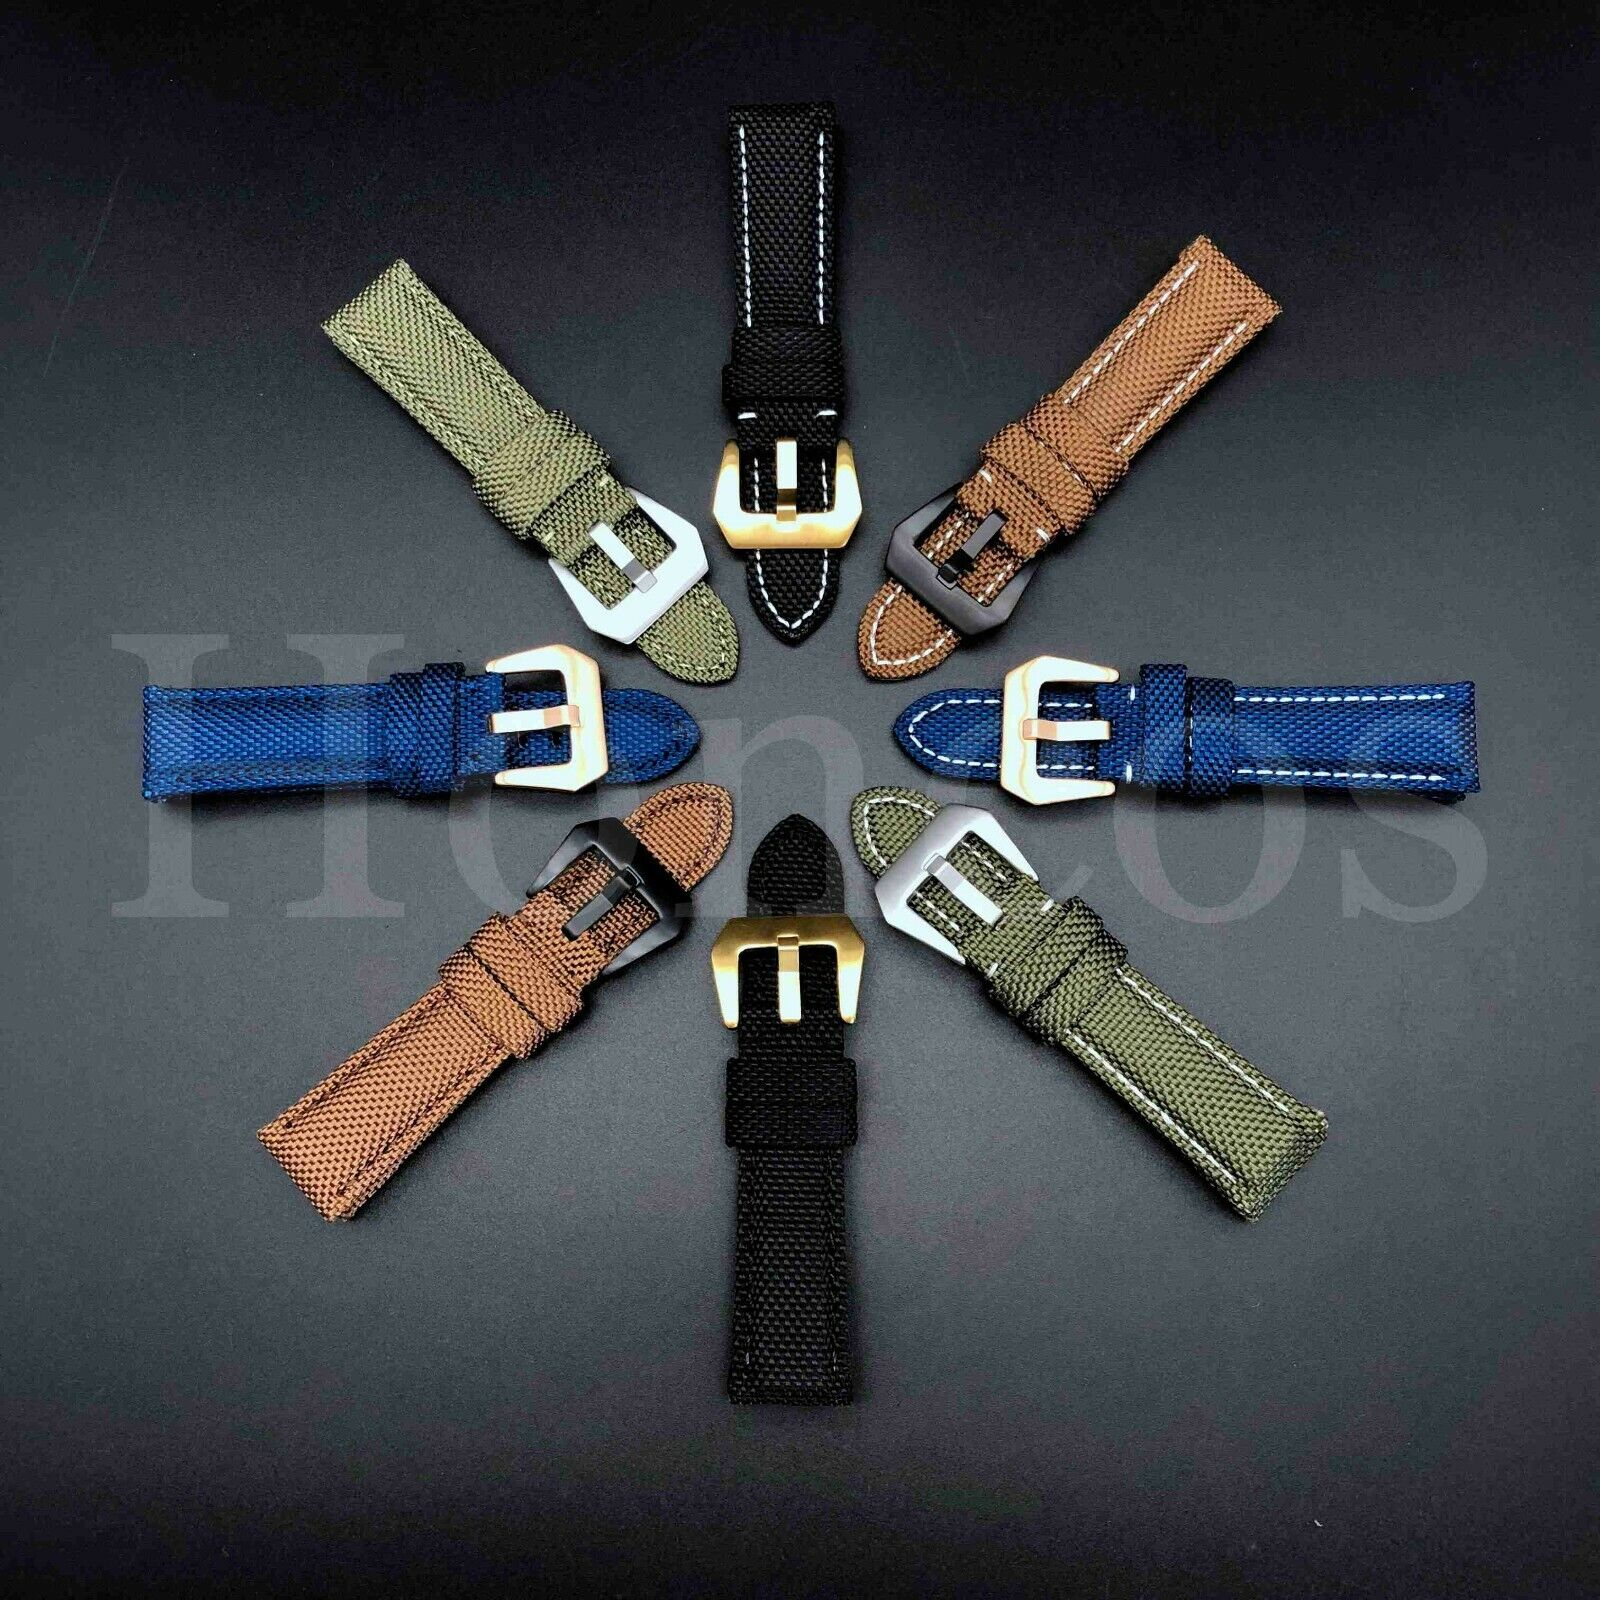 22 24 26 MM Canvas Stitch Calf Leather Watch Band Strap Fits